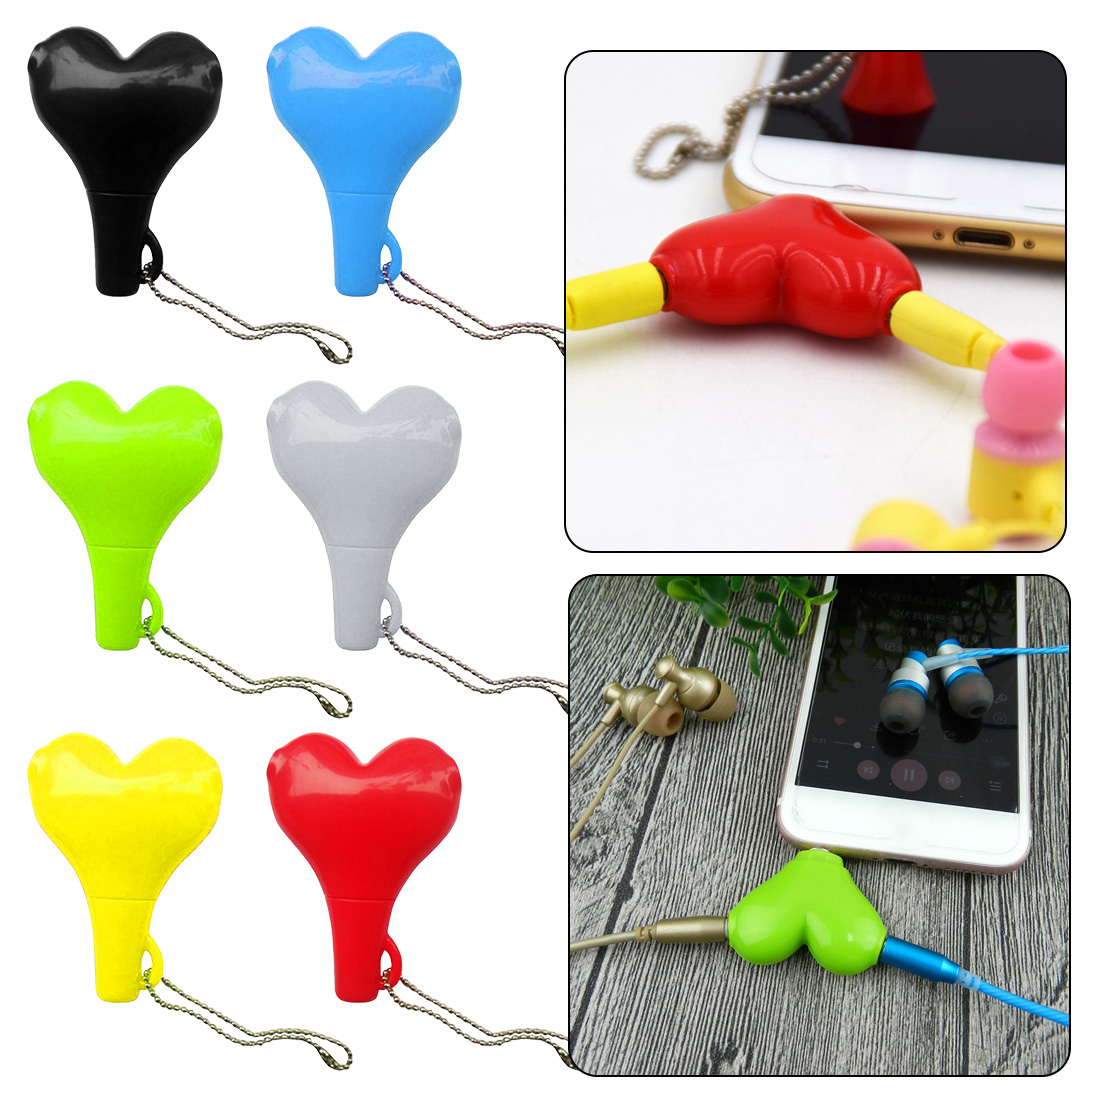 3.5mm Stereo Audio Headset Heart Shape Headphone Splitter For Couple Connector Adapter For Mobilephone MP3 MP4